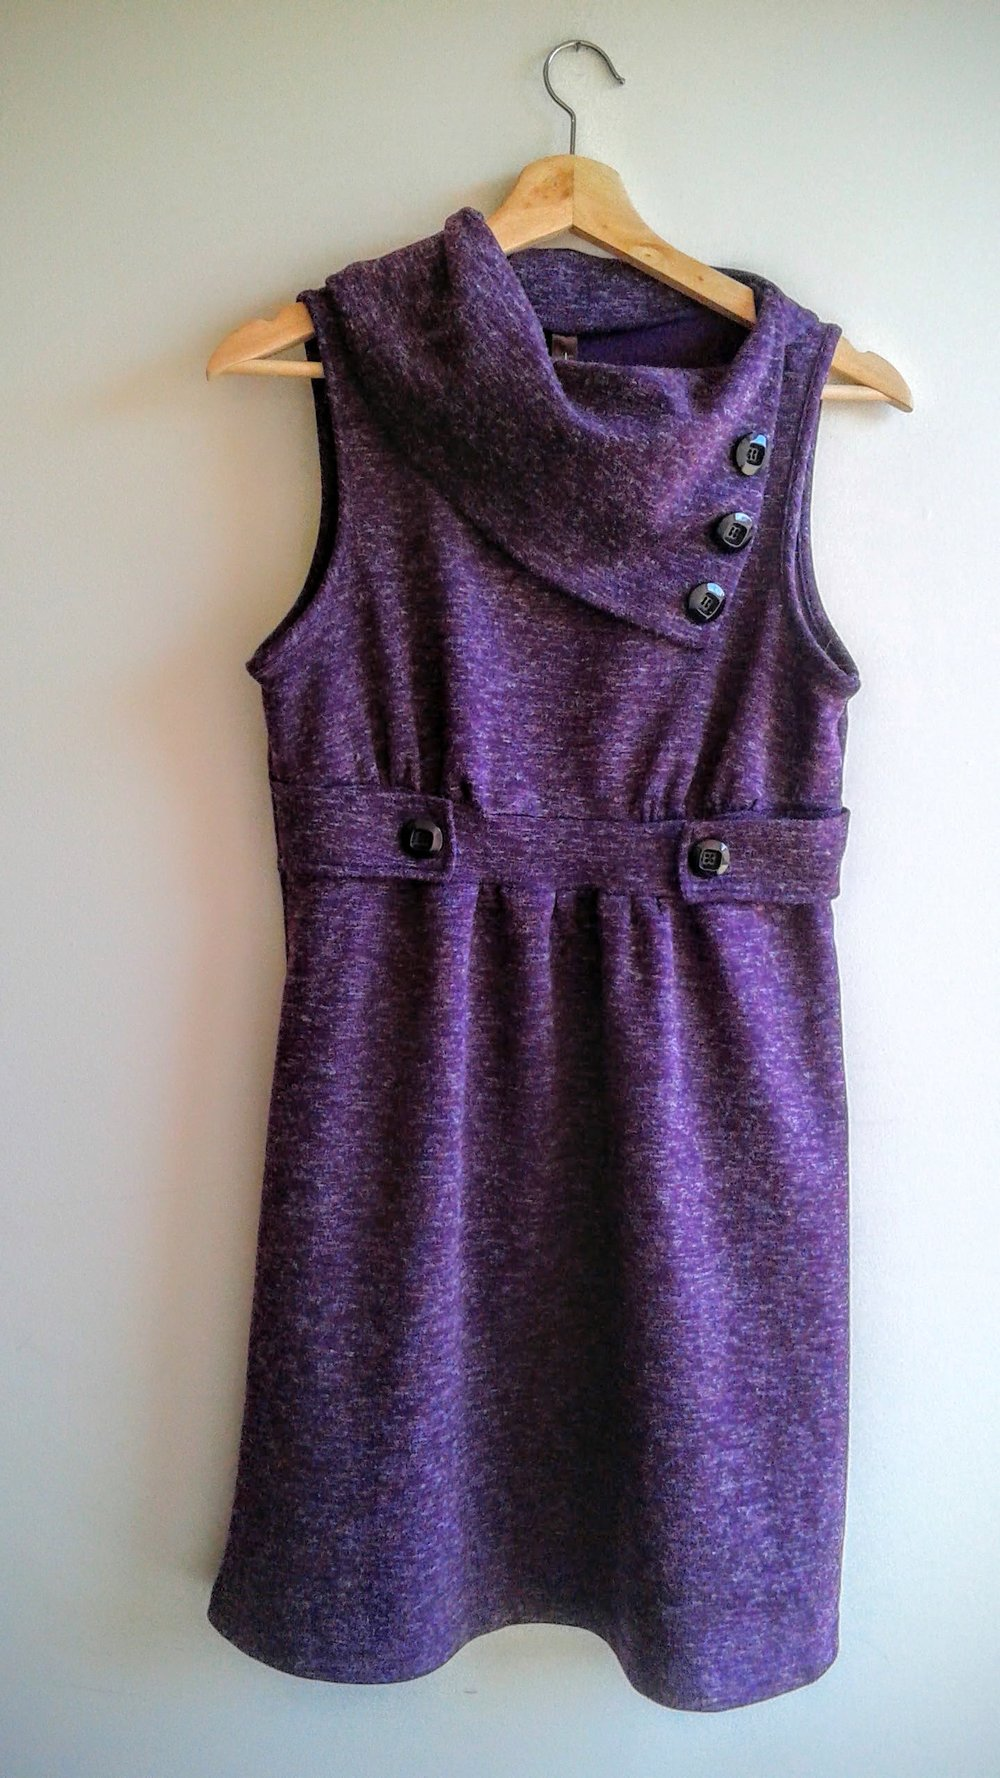 Lovely Day dress; Size S, $24